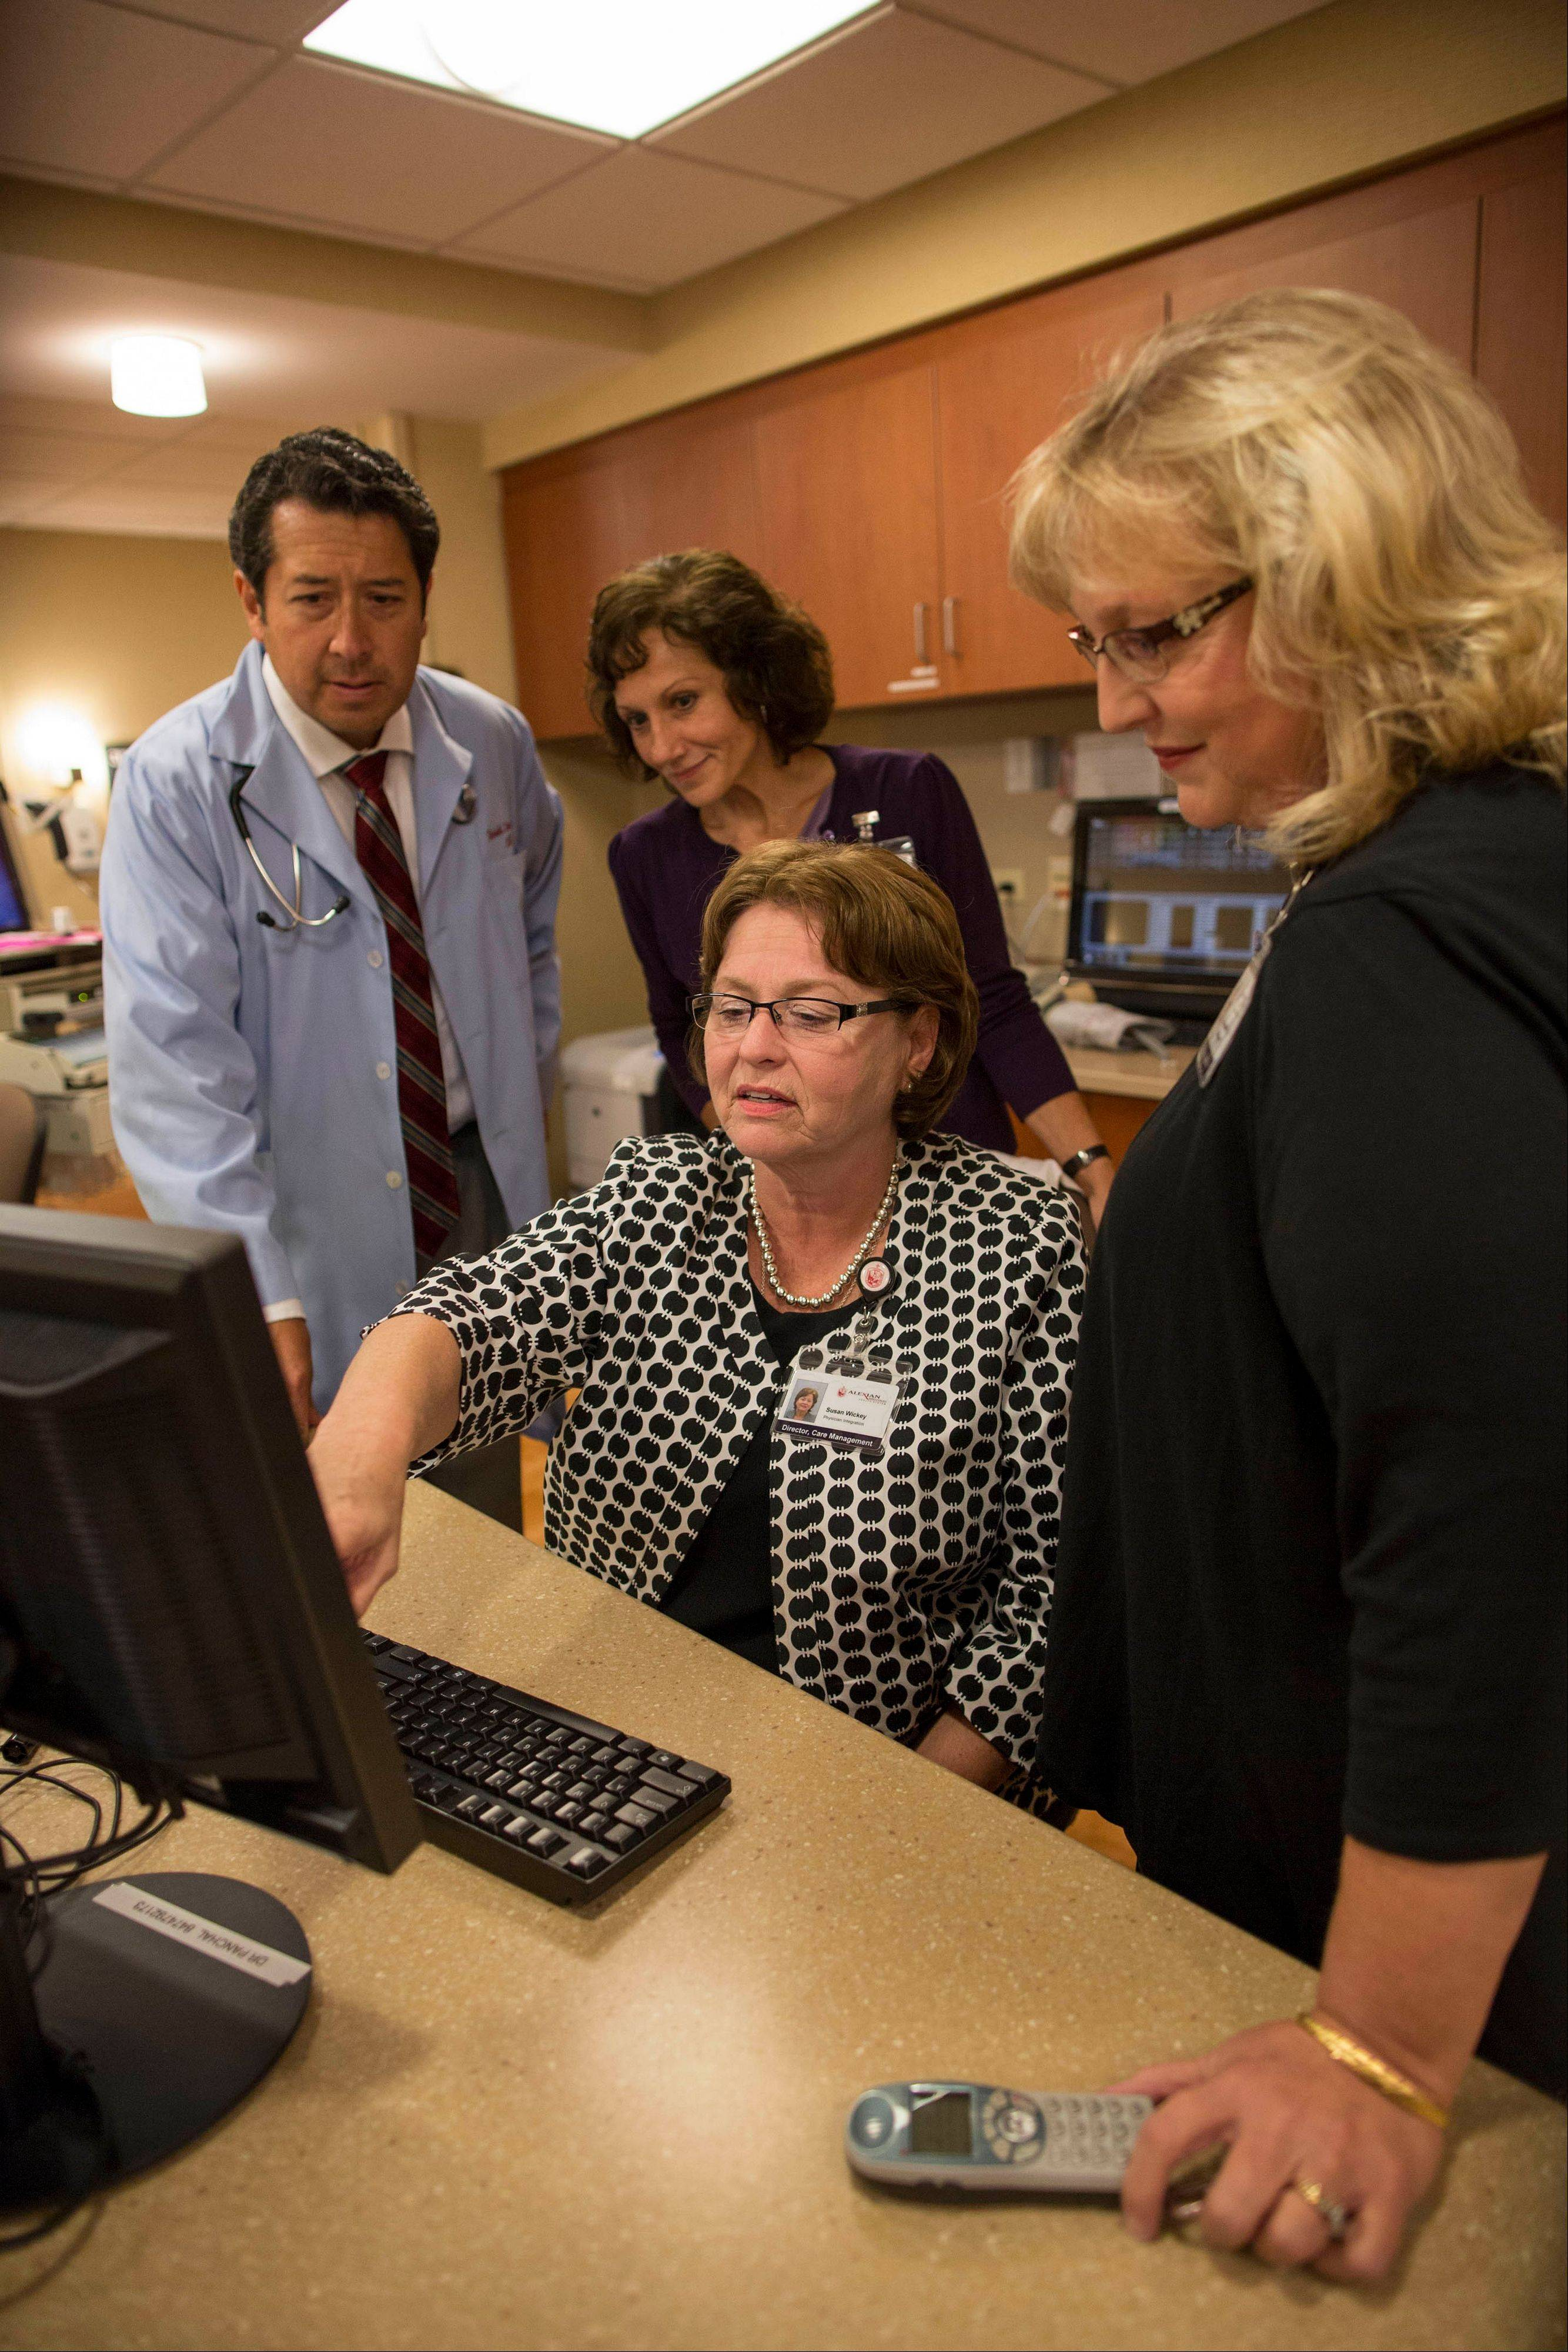 Dr. Reinhold Illerna, from left, administrative director of case management, Mary Schumann, director of care management, Sue Wickey and Jolene Grabowski, social work manager, work on a computer at a nurses station at the Alexian Brothers Medical Center in Elk Grove Village.